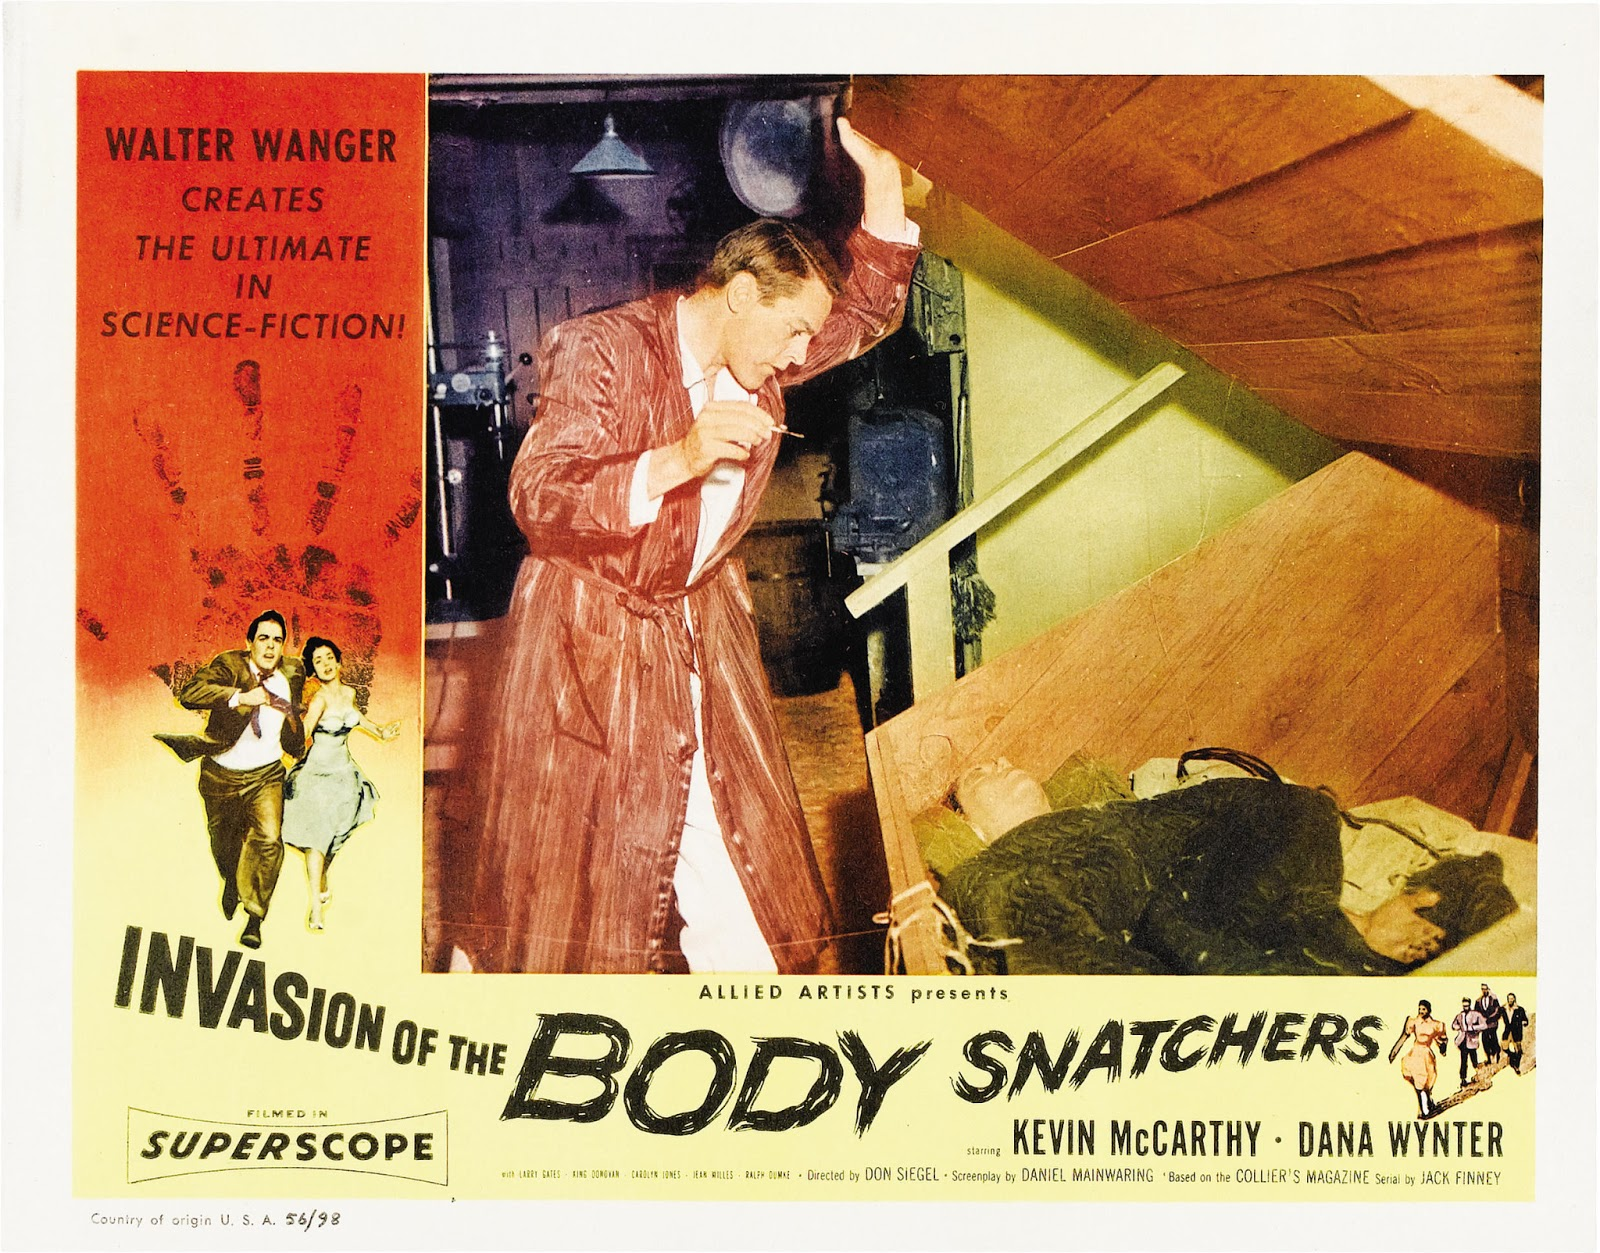 Happyotter: INVASION OF THE BODY SNATCHERS (1956)